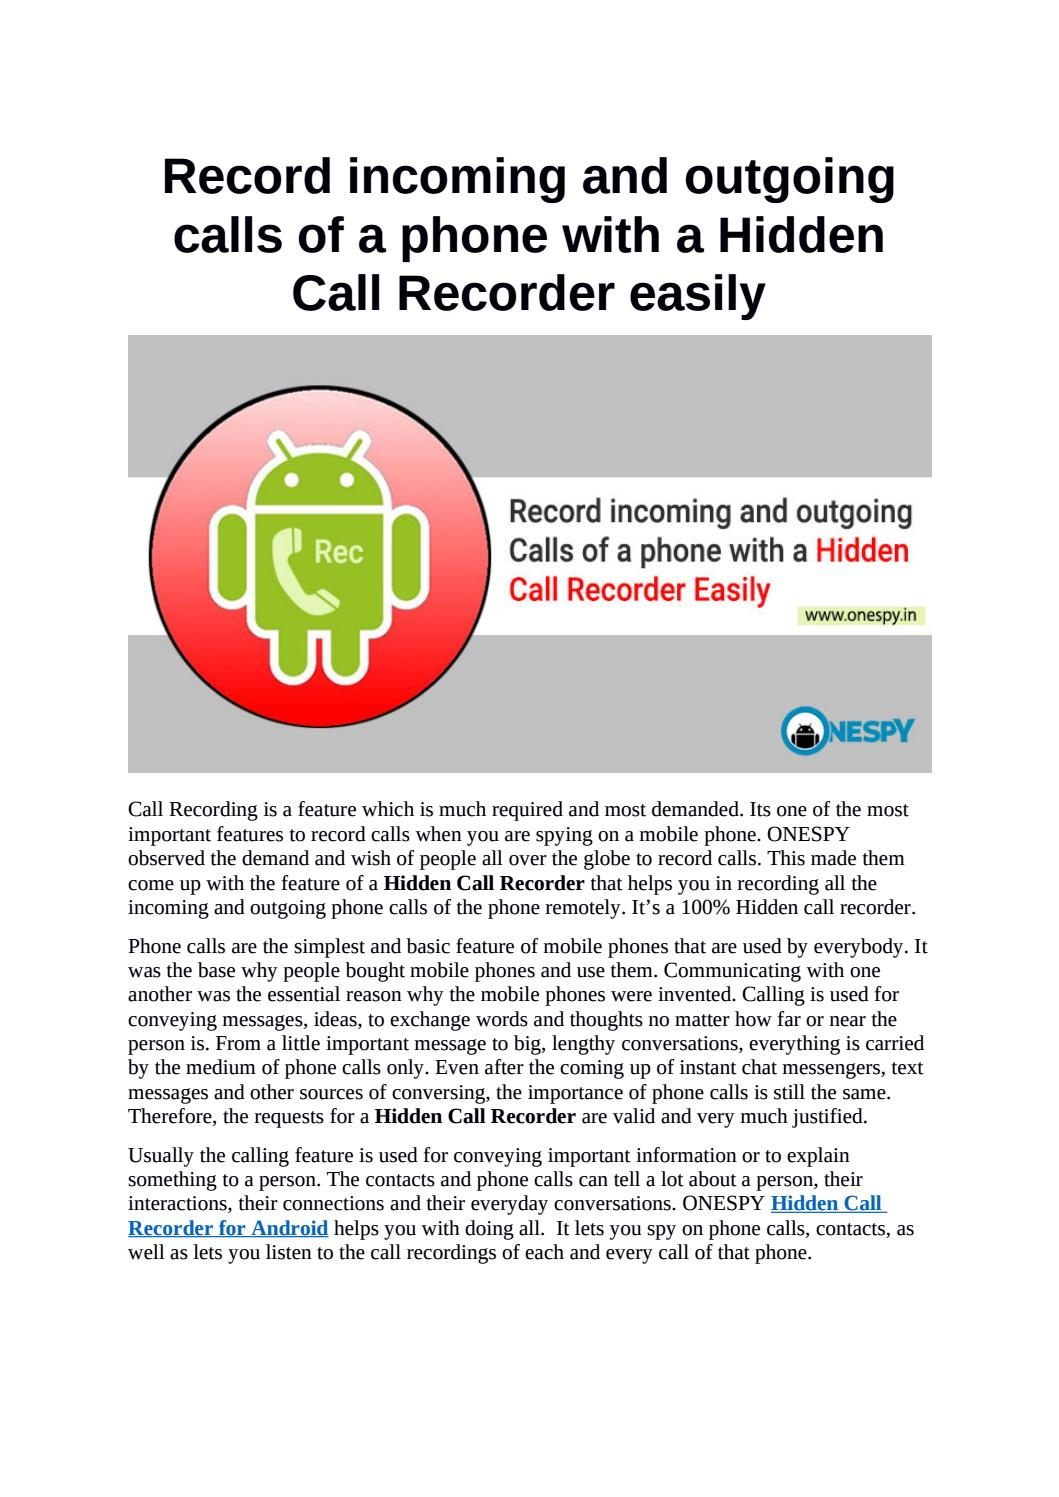 Record incoming and outgoing calls of a phone with a Hidden